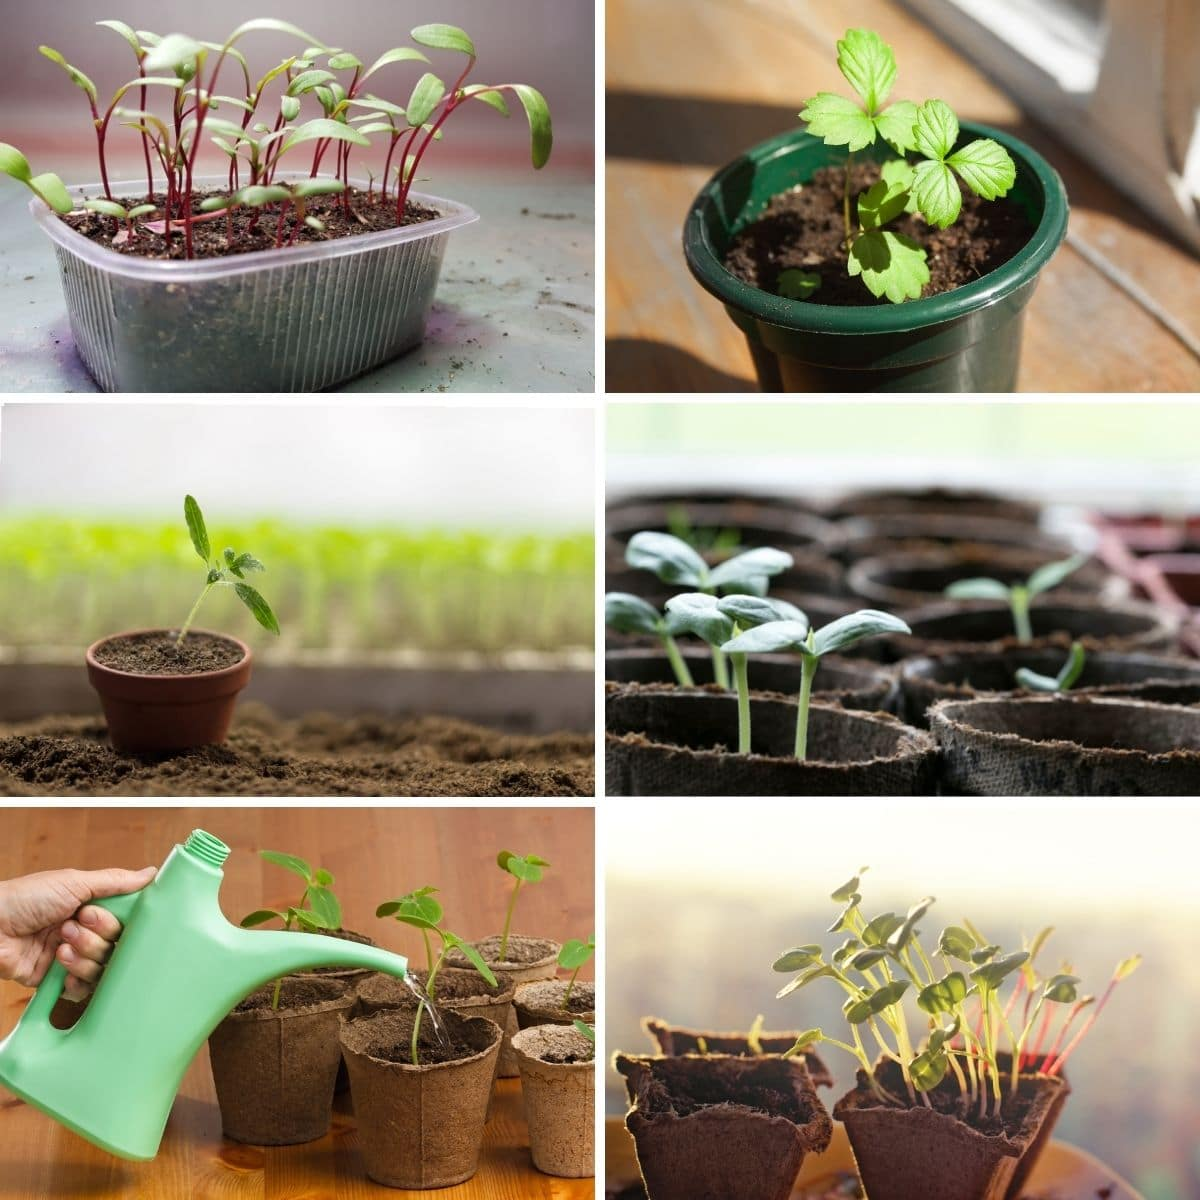 Ways to prevent and fix leggy seedlings images from the content in a collage photo.